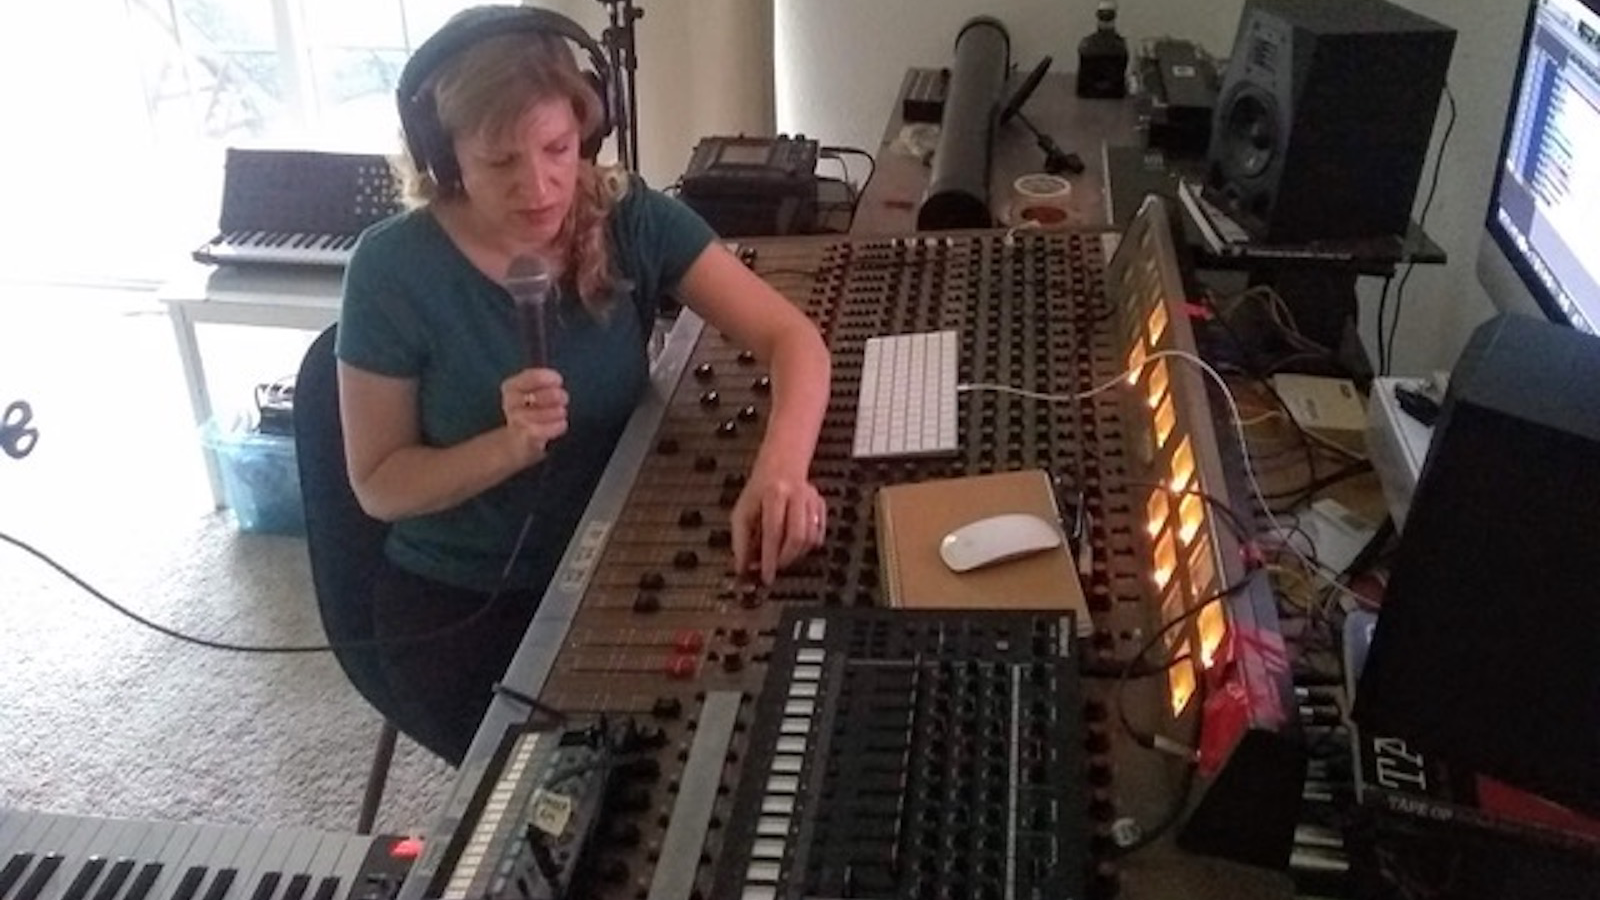 How CalArts Shifted to Remote Recording amid COVID Concerns